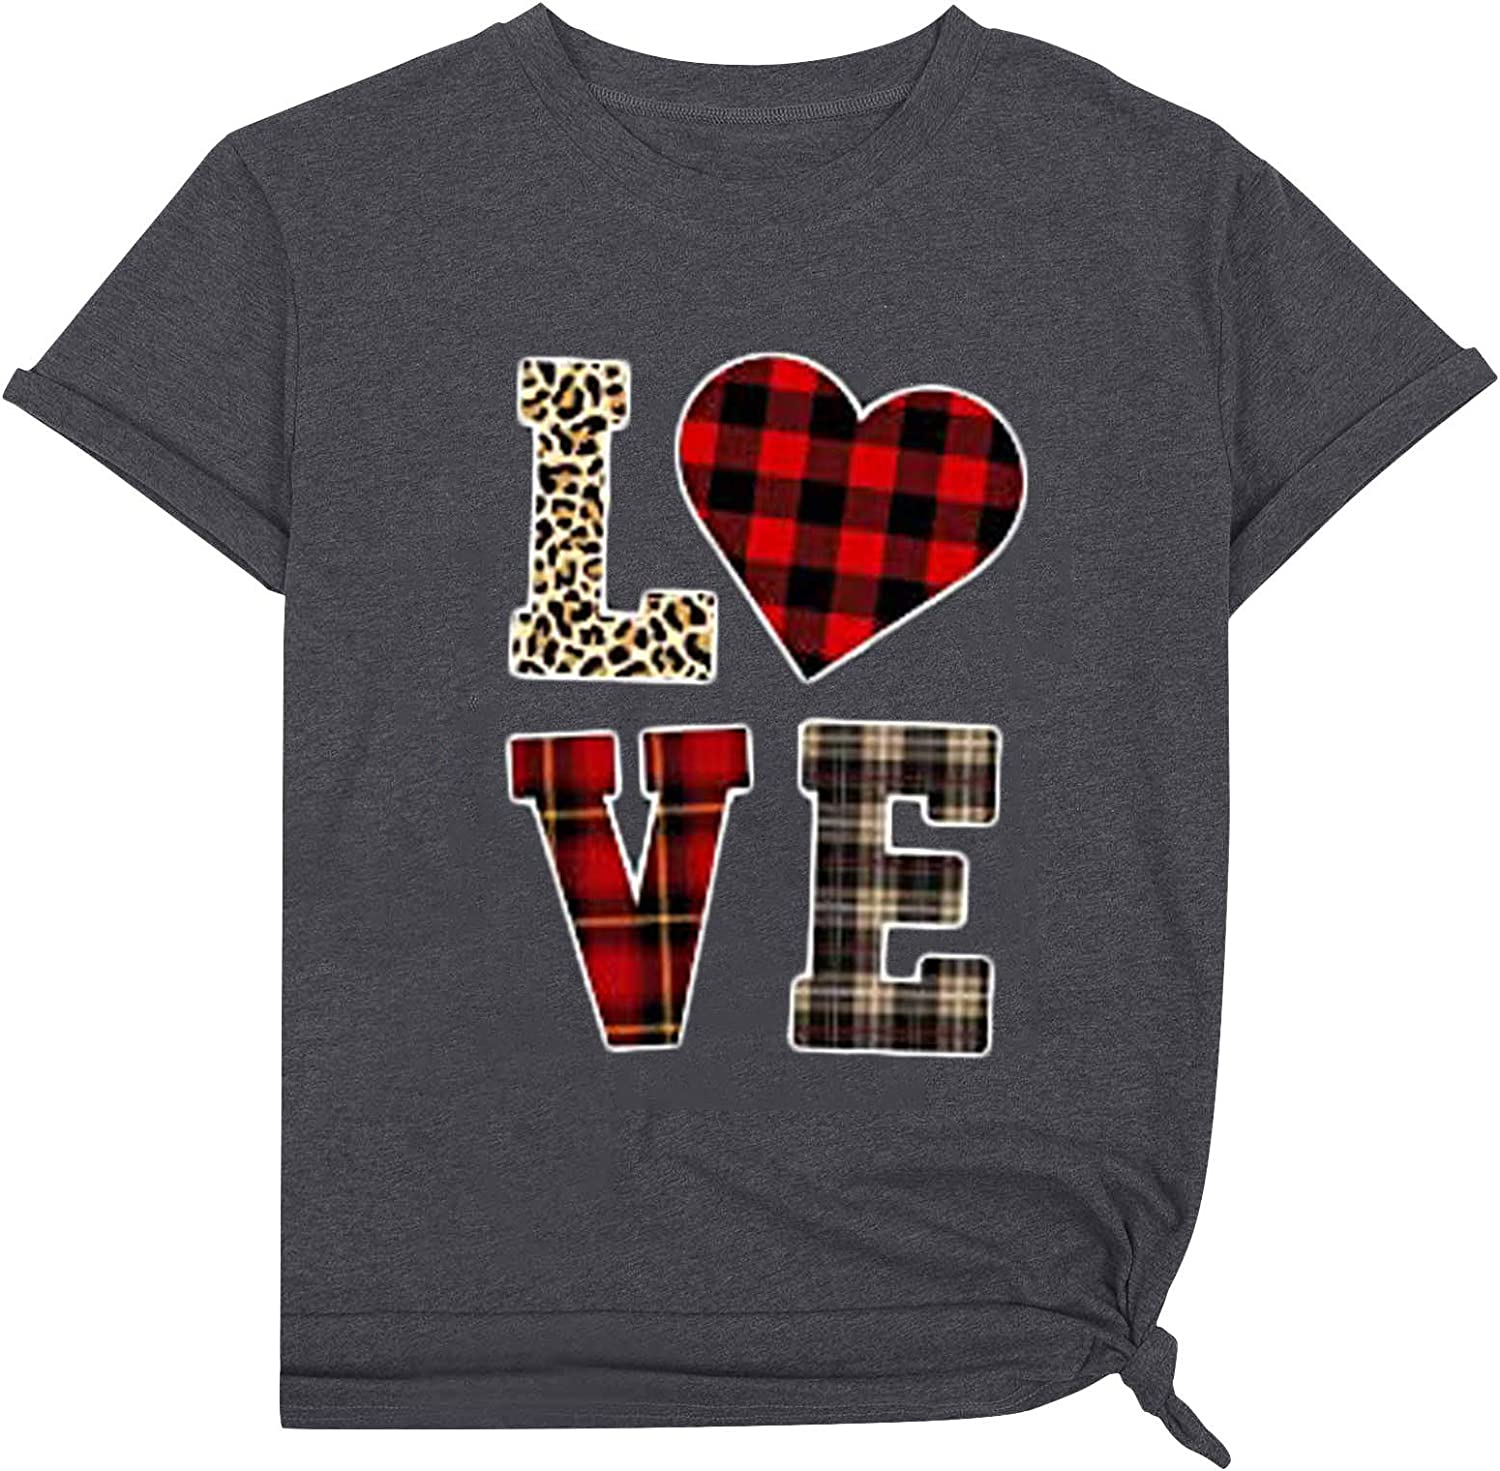 AODONG Valentine's Day Shirts for Women,Womens Love Heart Letter Printed T Shitrs Short Sleeve Cute Shirt Tops Blouses